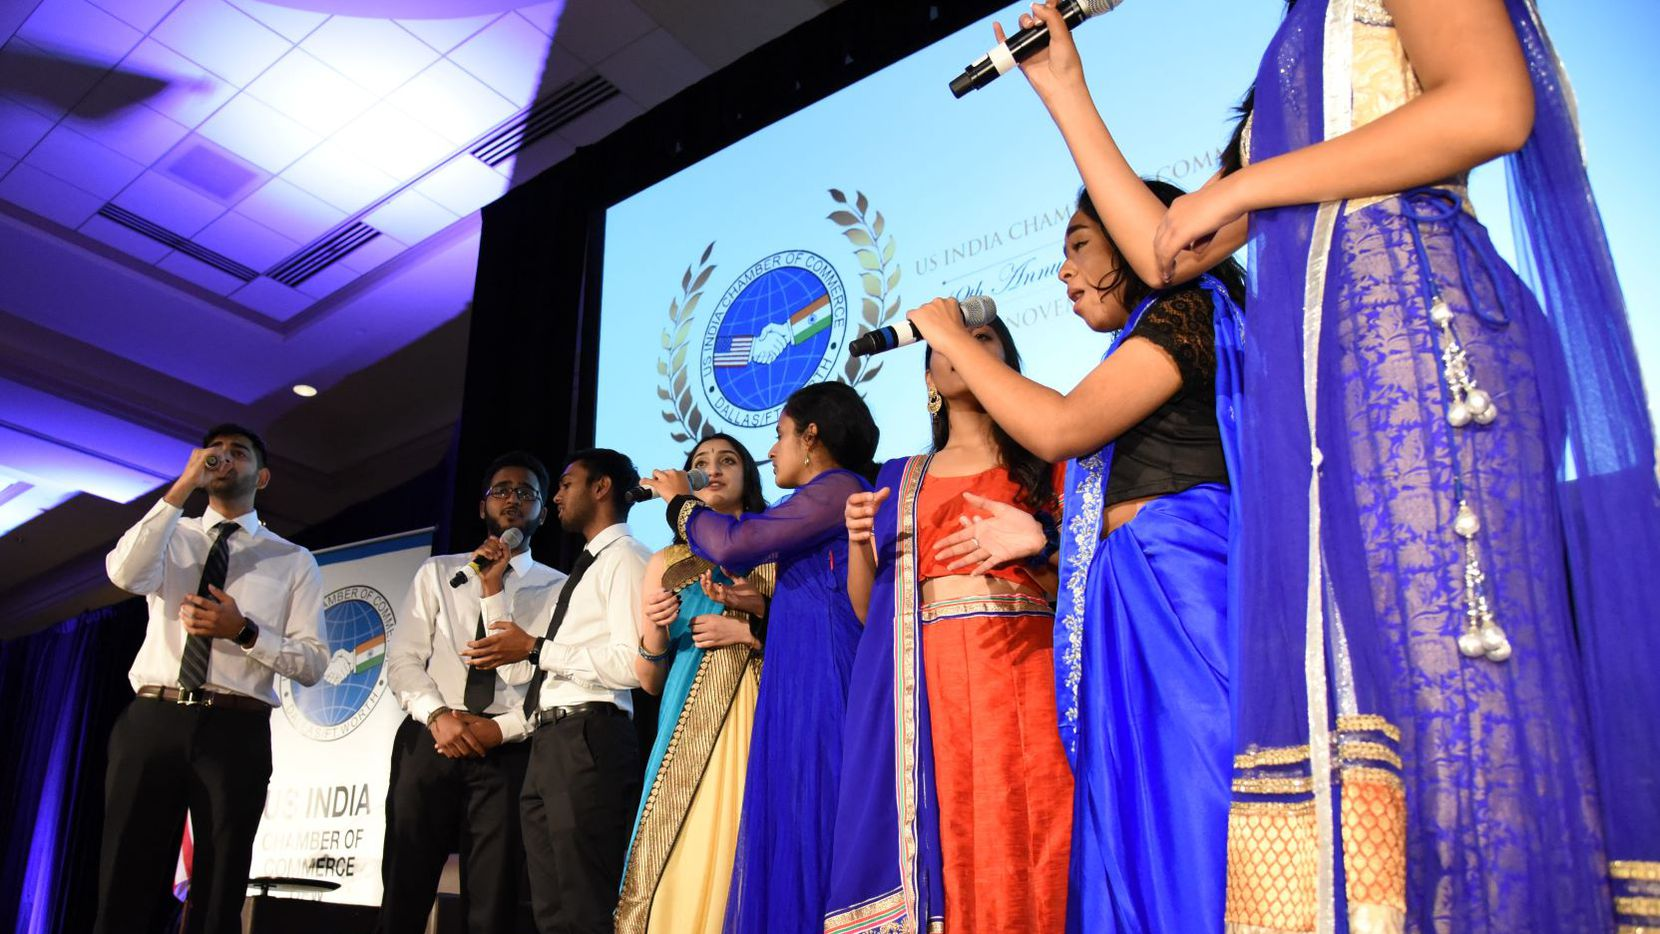 The South Asian A Capella Ensemble Ensemble from the University of Texas at Dallas sang the U.S. and Indian national anthems at the U.S. India Chamber's 19th annual awards banquet in Plano.